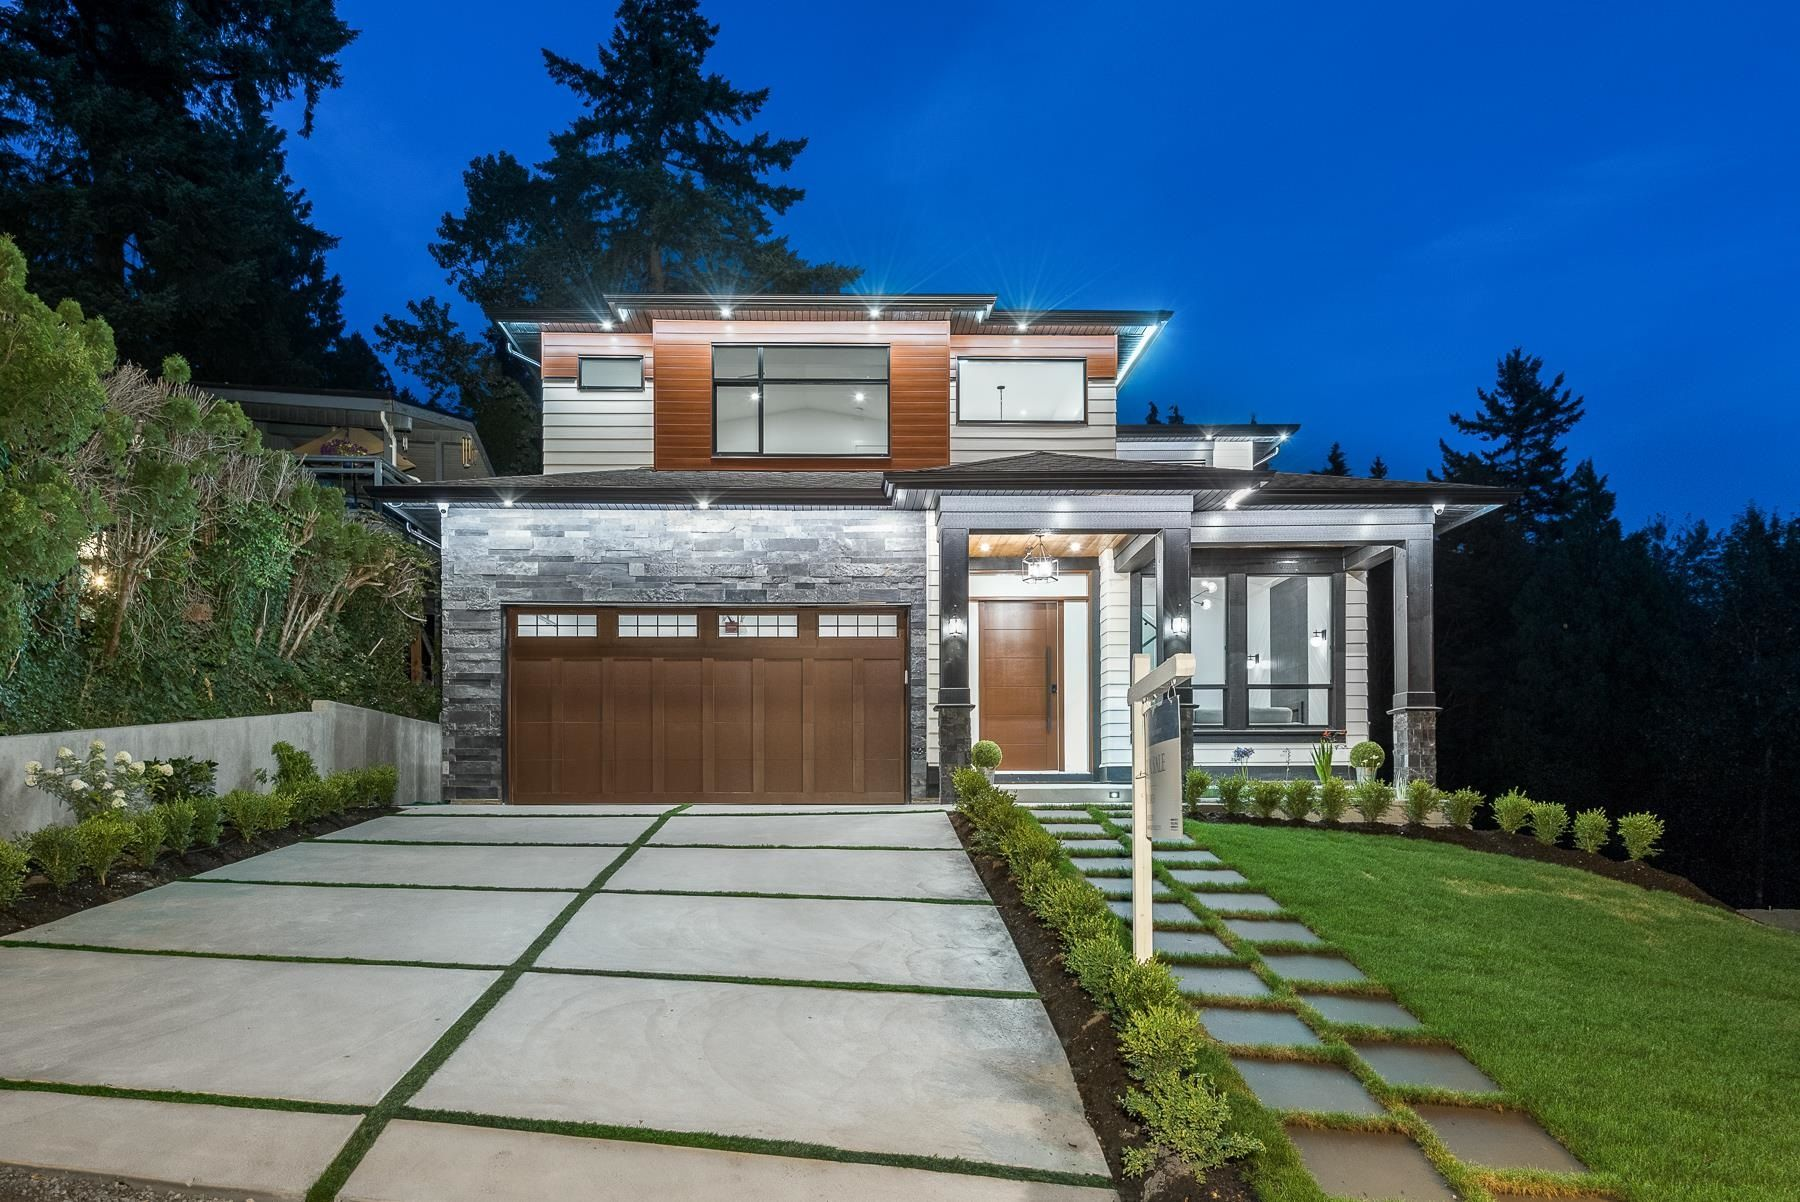 Main Photo: 305 CUTLER Street in Coquitlam: Central Coquitlam House for sale : MLS®# R2609971